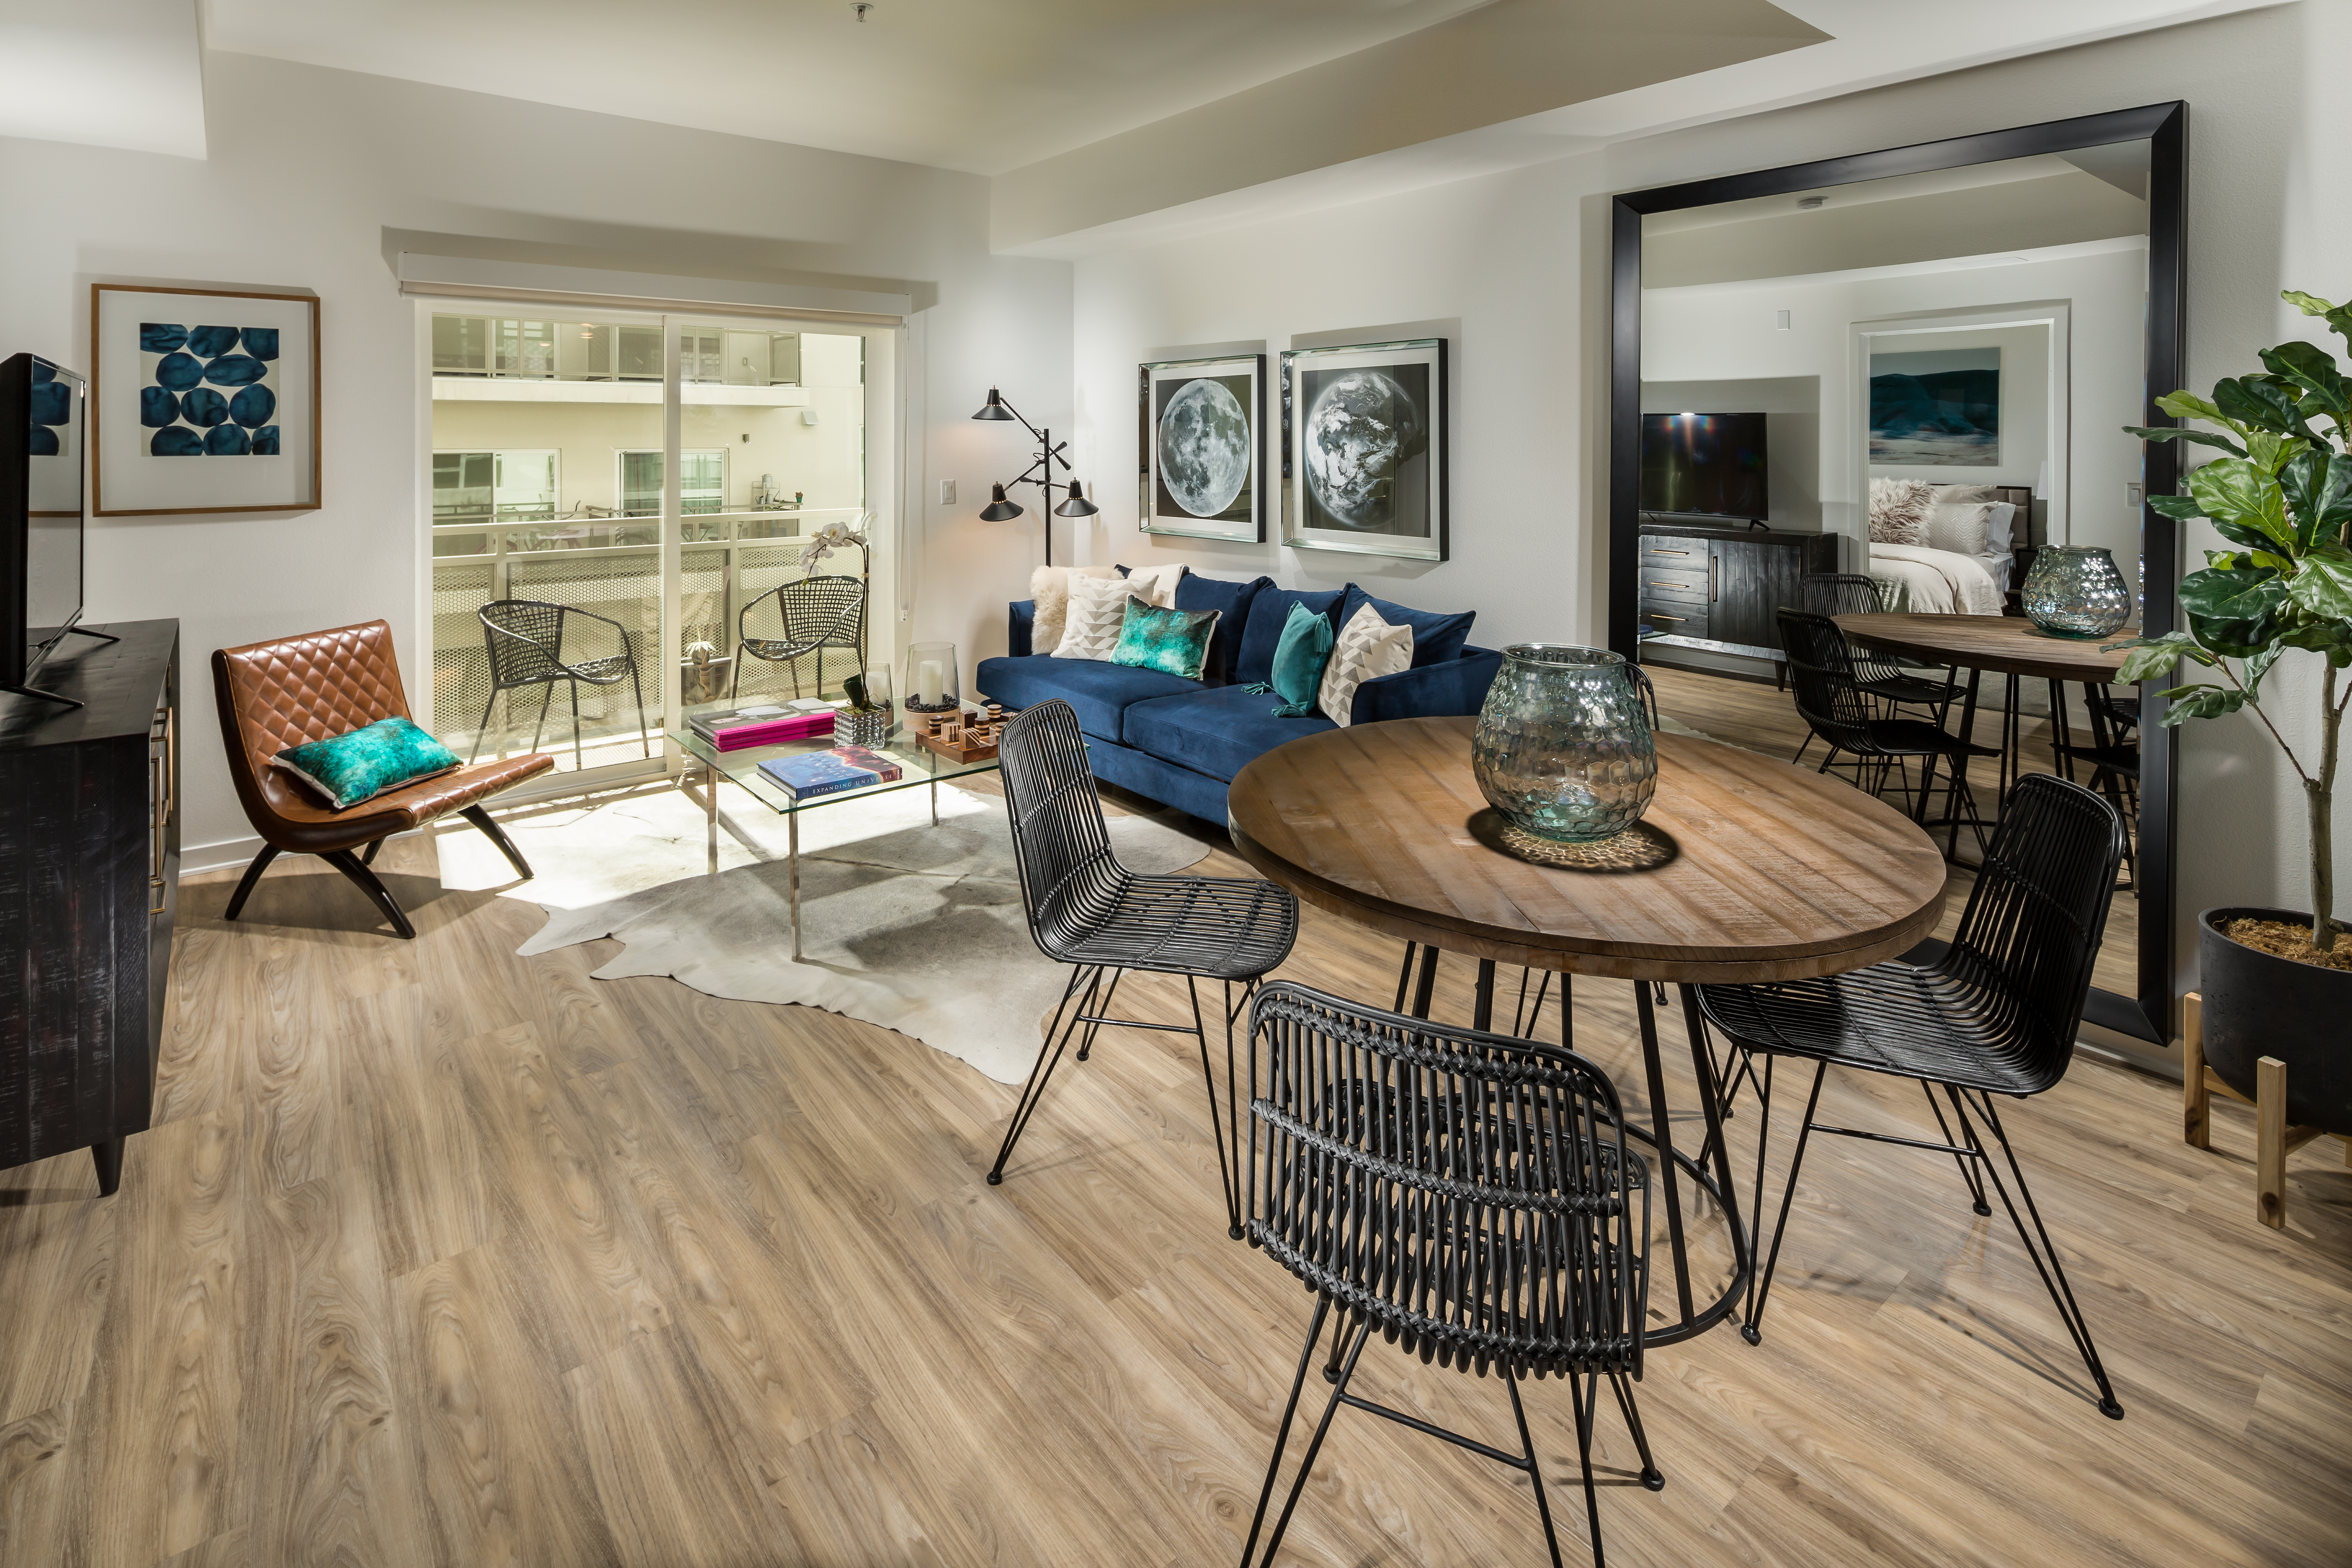 Onyx Apartments living space and dining area